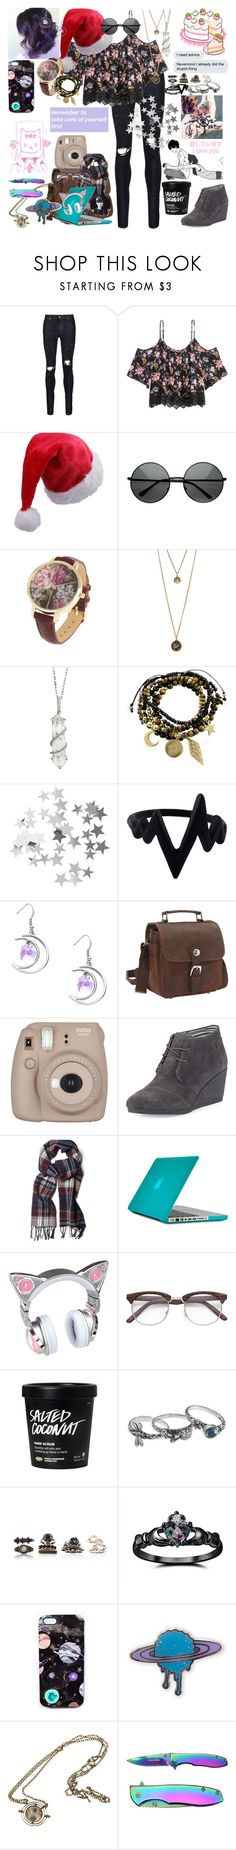 """""""With the moon shining bright and red lanterns alight, butterflies are subtly lured come the sound of festival tunes"""" by rukiakuchiki12341 ❤ liked on Polyvore featuring AMIRI, H&M, Sharon Khazzam, Essentia By Love Lily Rose, Vagabond Traveler, Fujifilm, TOMS, GANT, Speck and NOVICA"""